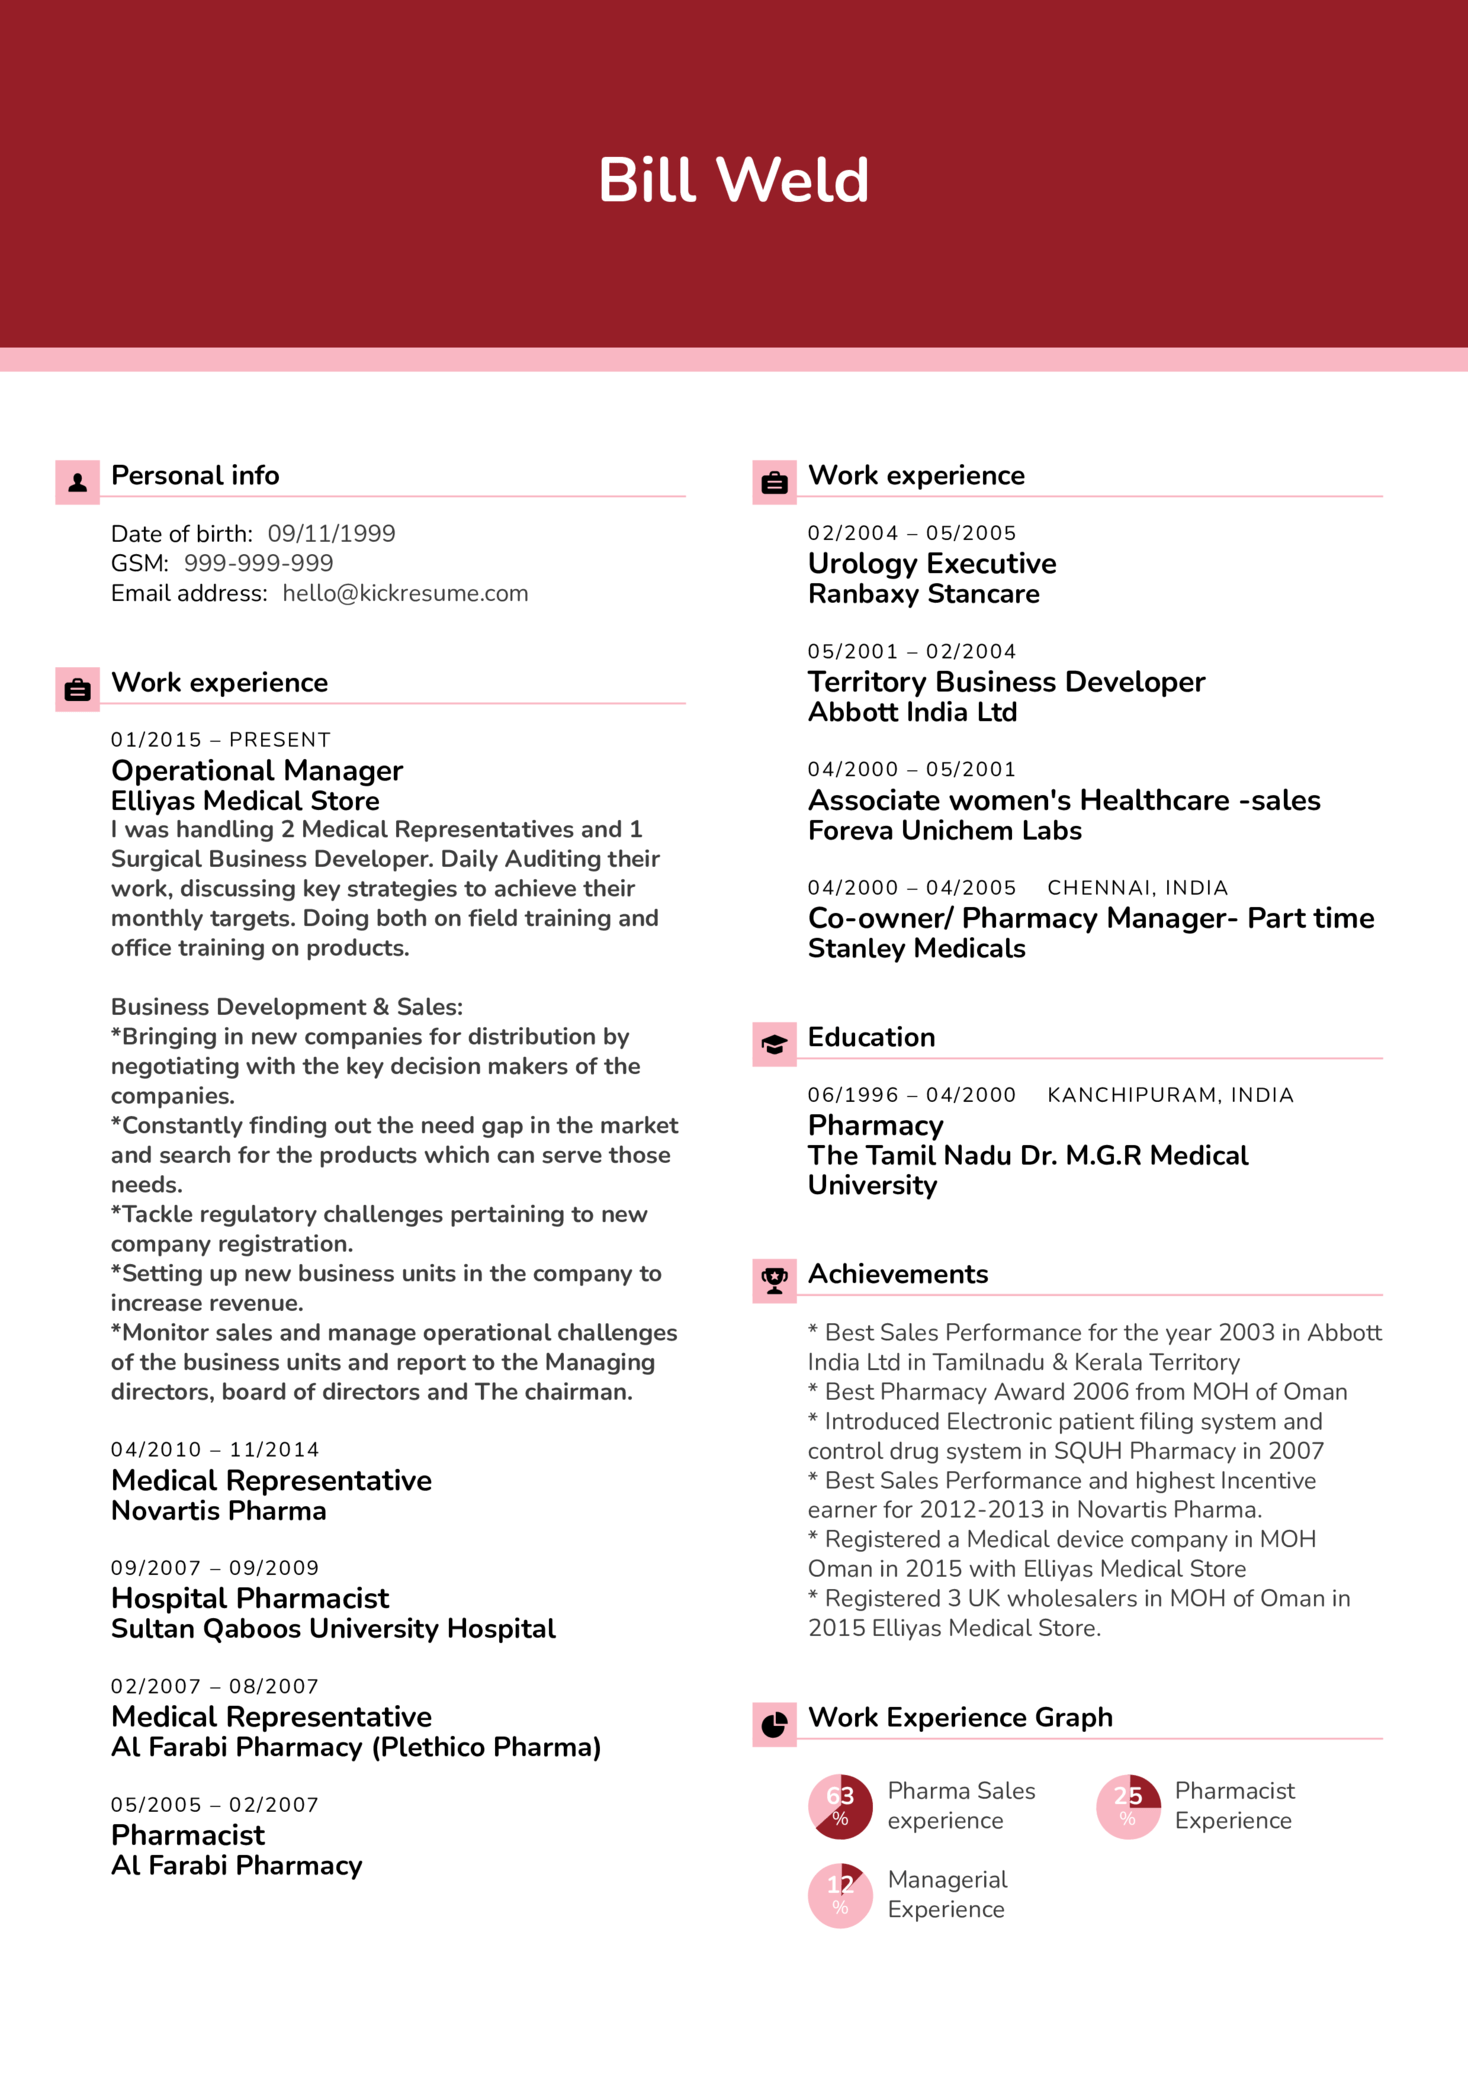 Pharmacy Business Manager CV Example (Teil 1)